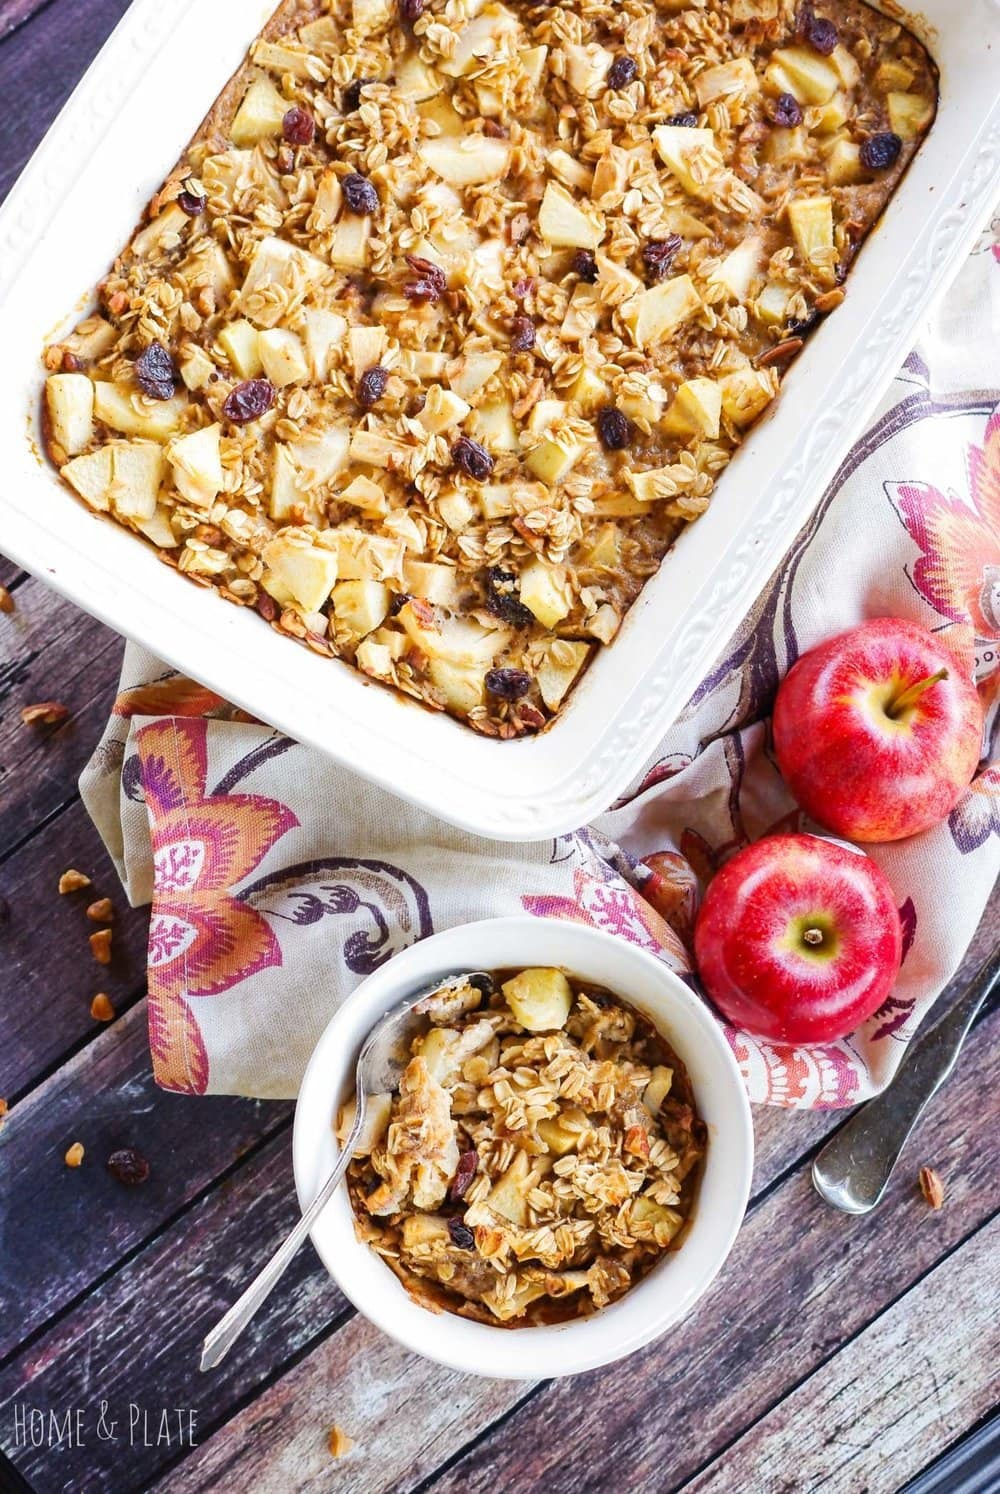 Apple Cinnamon Oatmeal Bake | www.homeandplate.com | Enjoy this easy to make Apple Cinnamon Oatmeal casserole recipe any weekend or holiday morning.